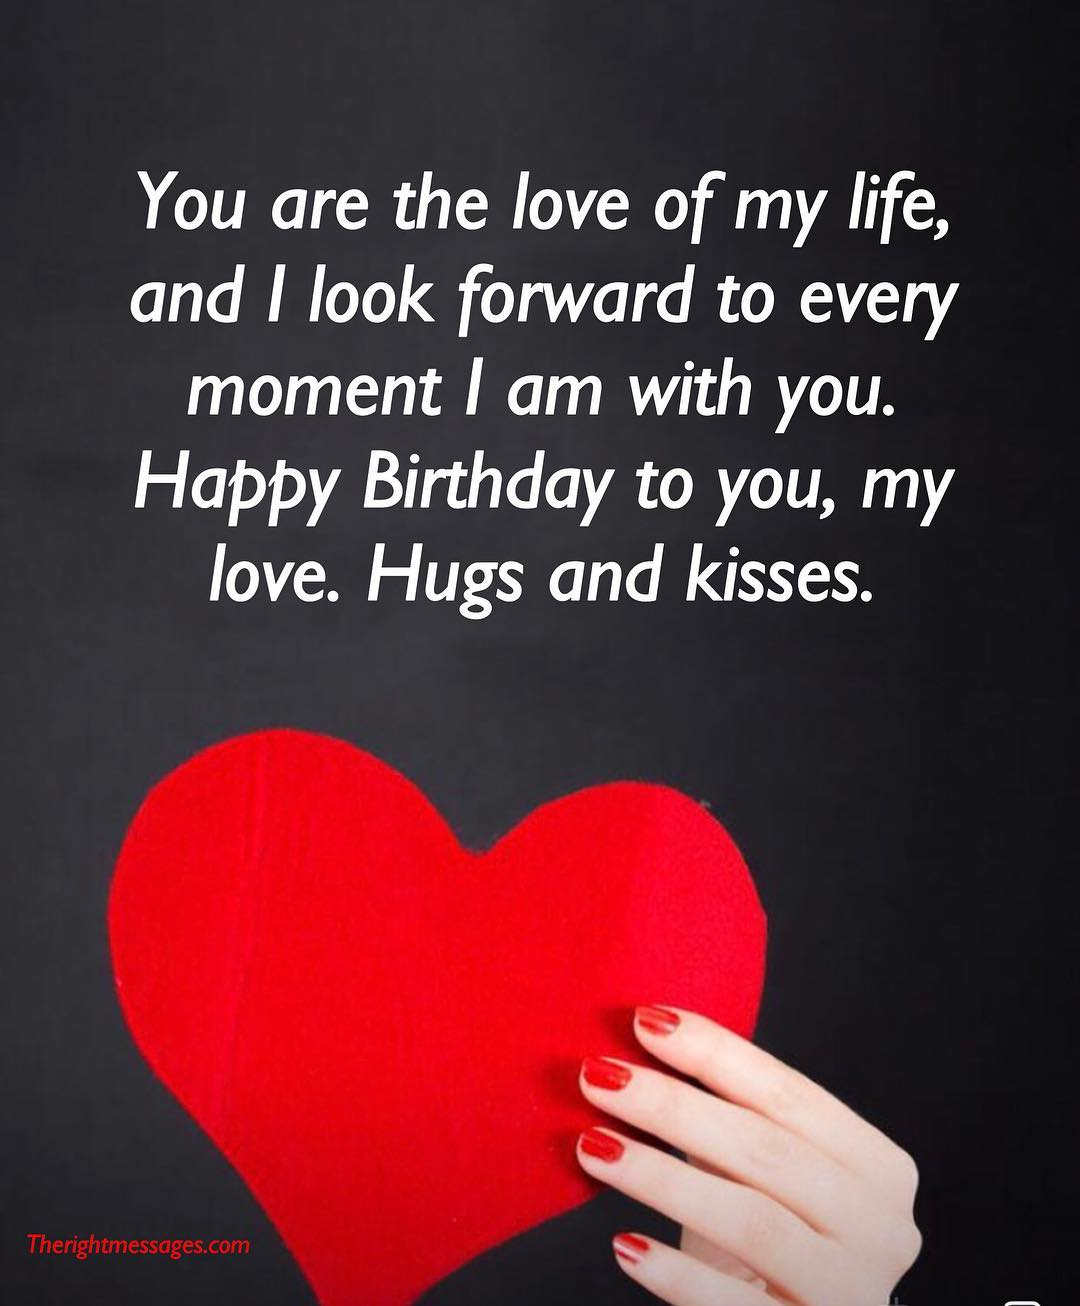 Boyfriend Birthday Sms: Short And Long Romantic Birthday Wishes For Boyfriend